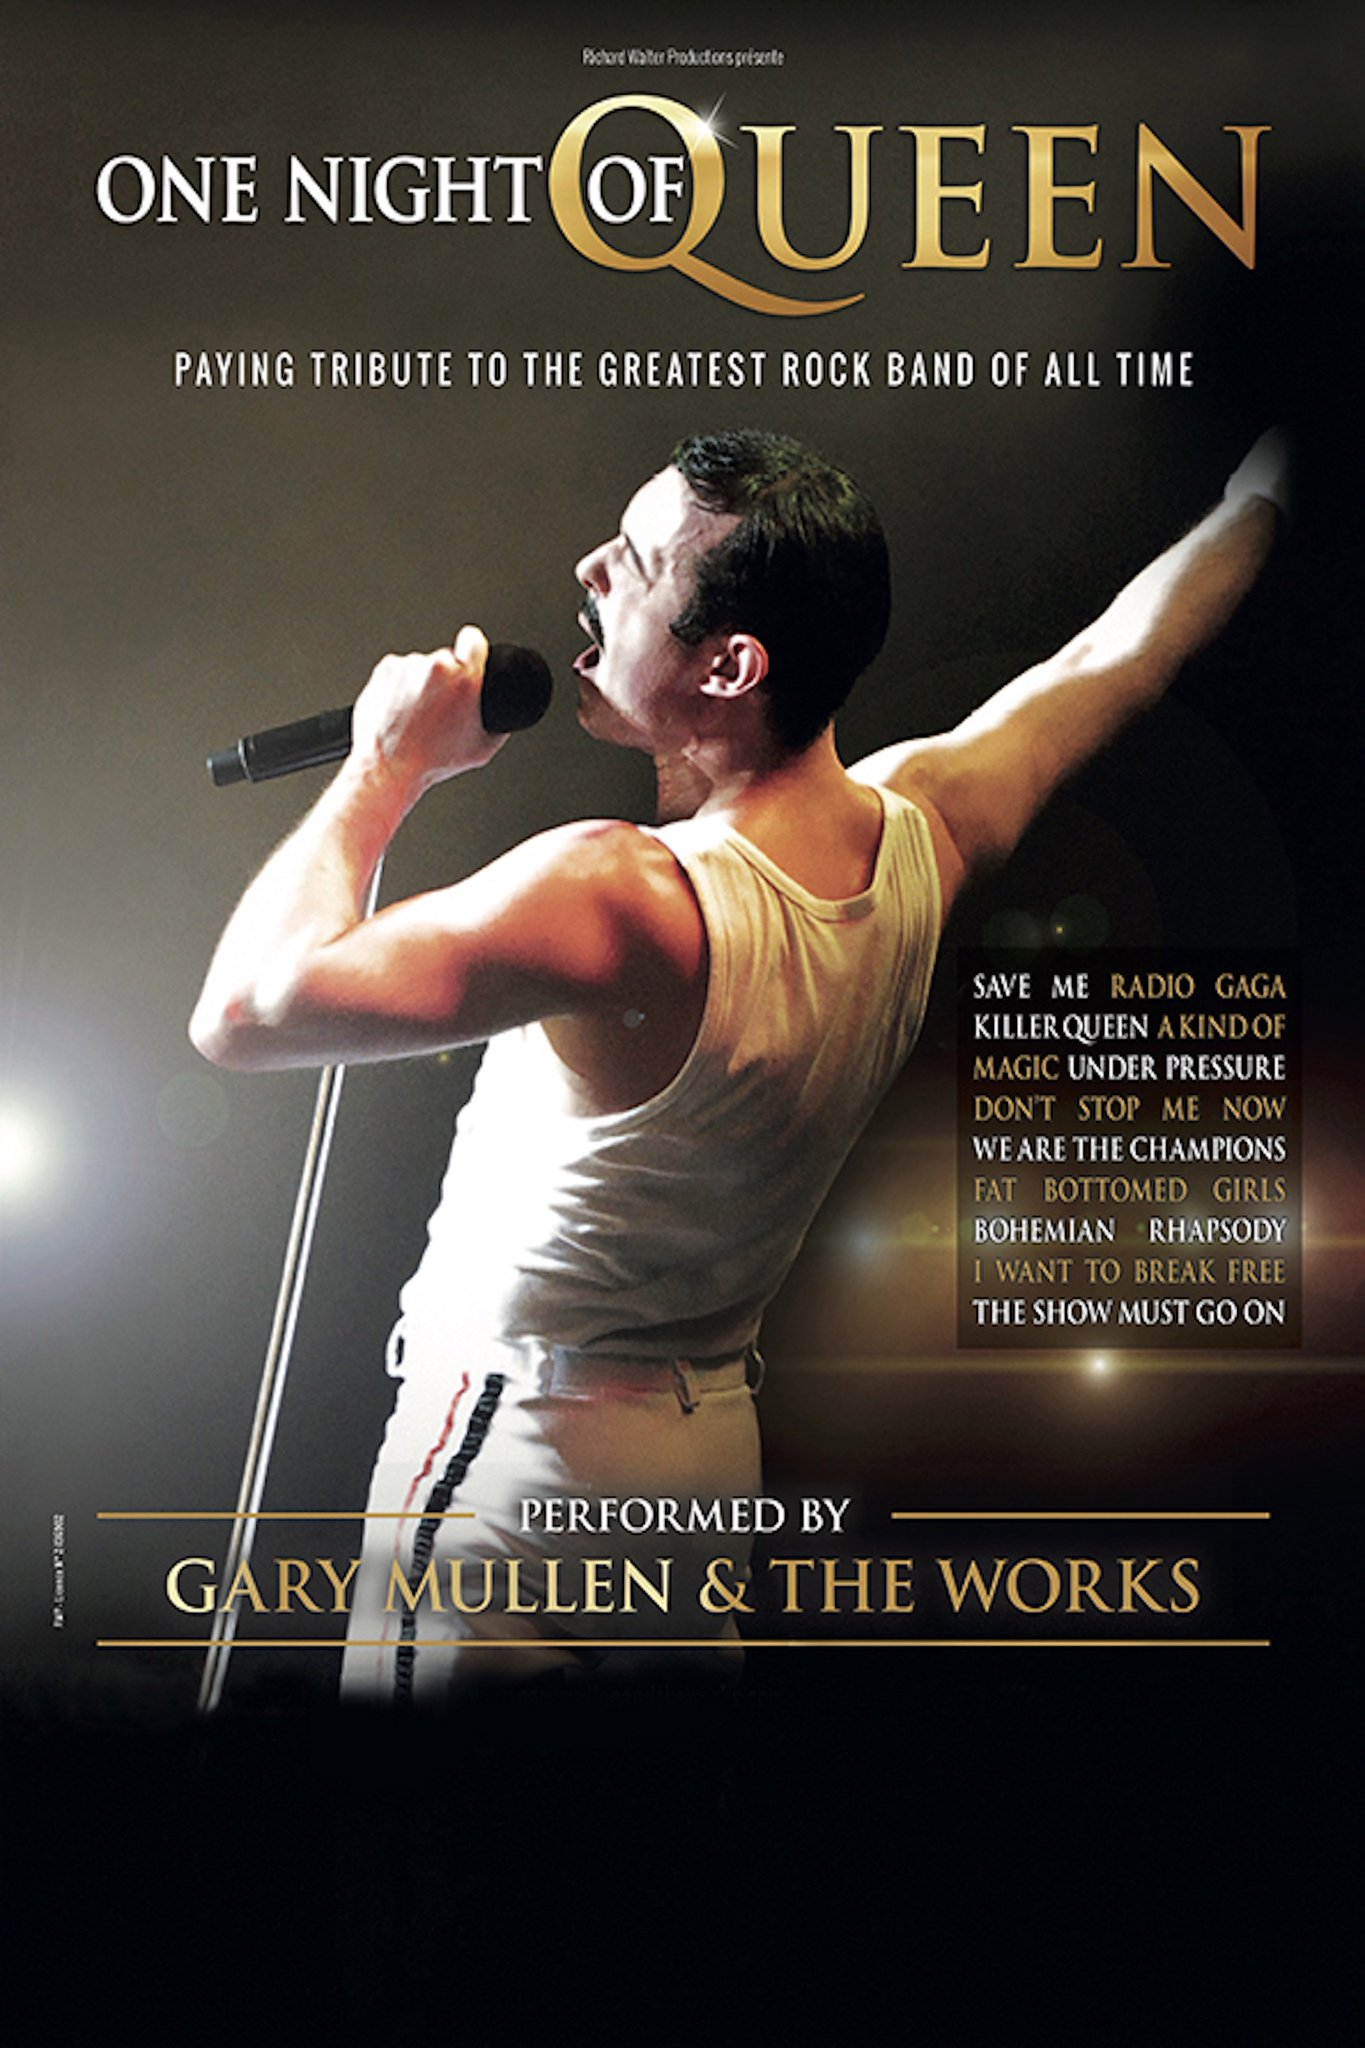 One Night of Queen at L'amphitheatre Tickets